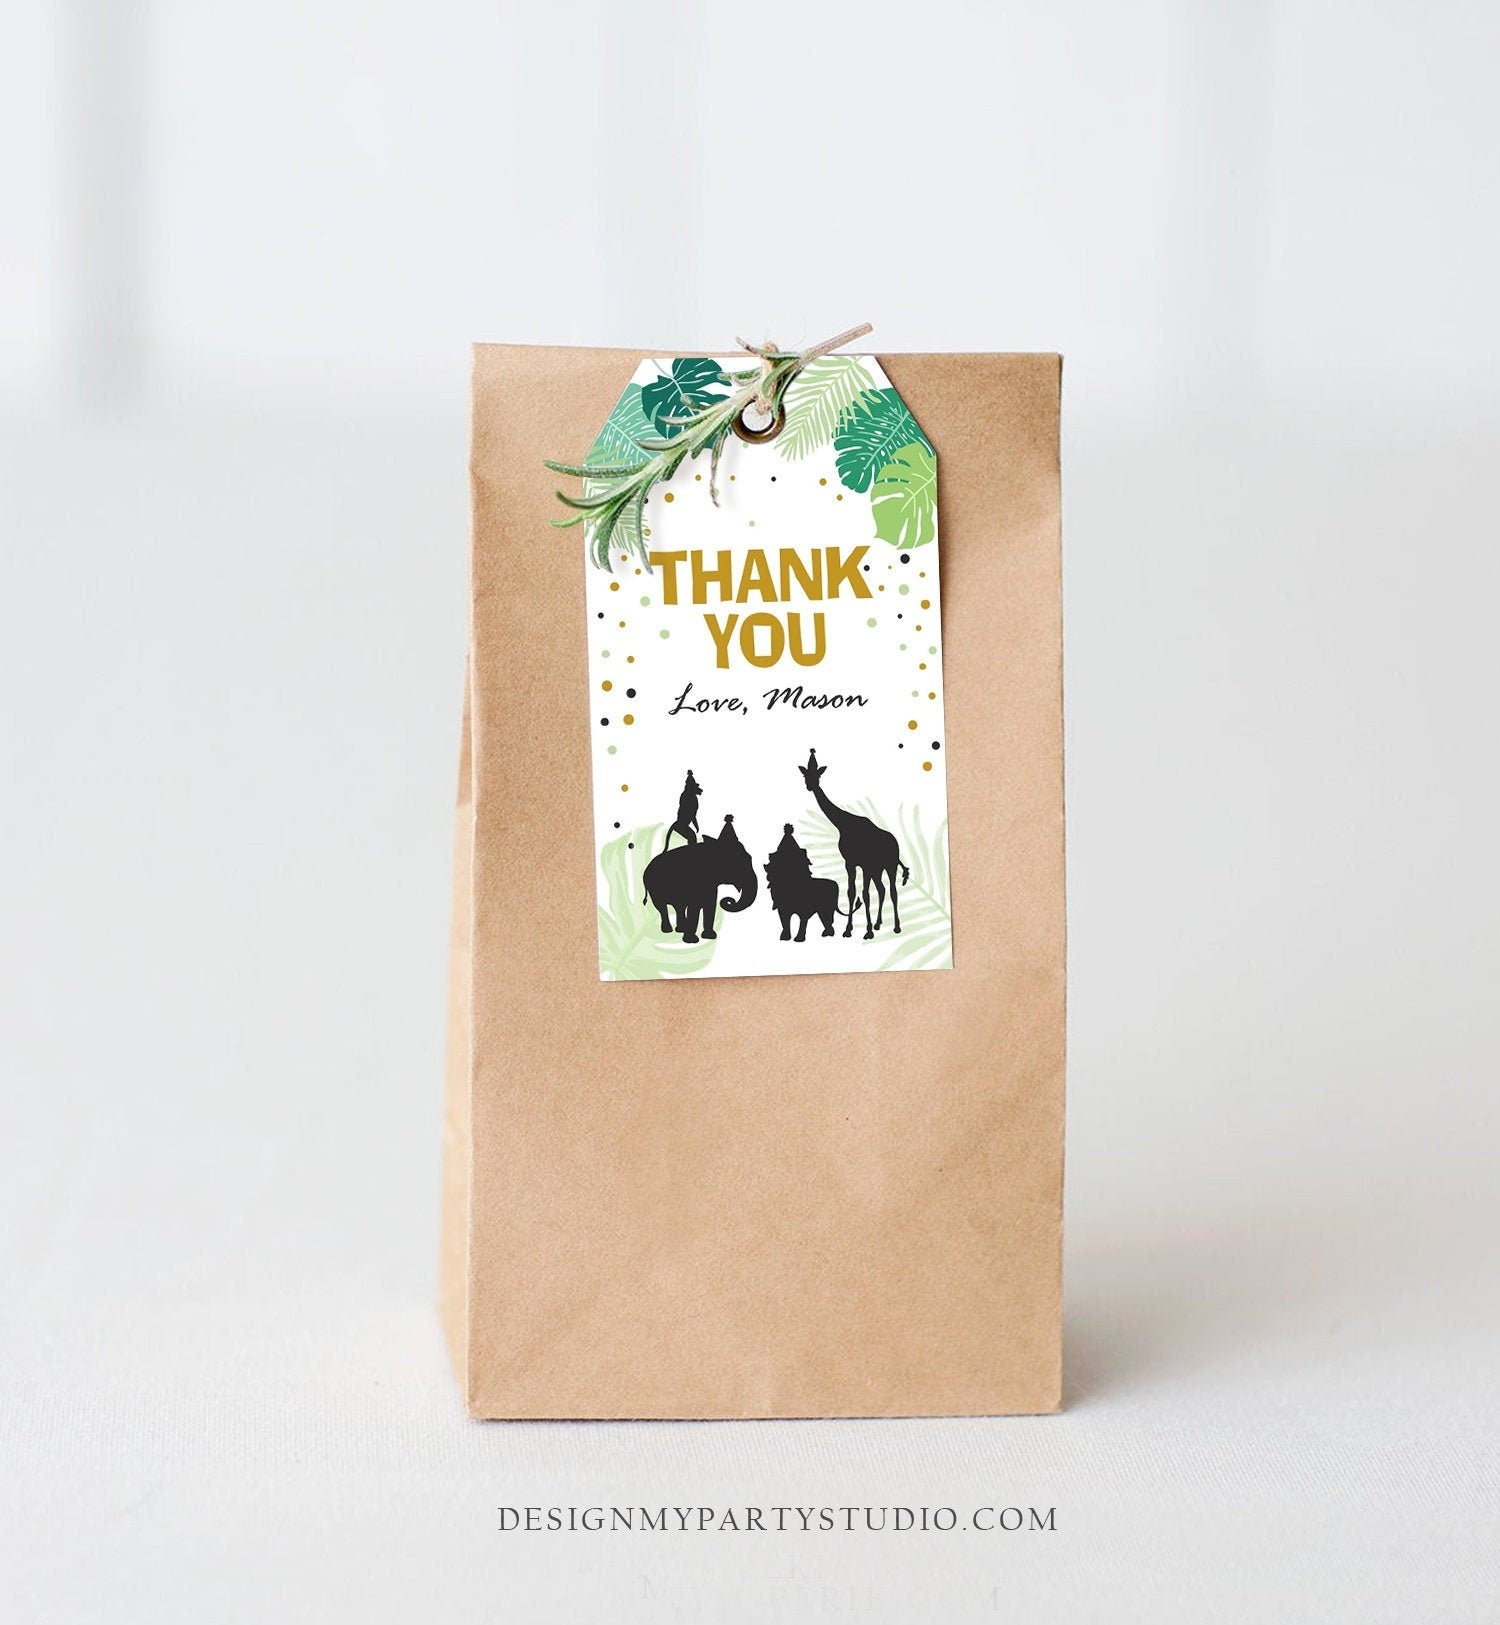 Editable Safari Animals Favor Tag Thank You Tags Wild One Wild Animals Jungle Zoo Download Black Gold Leaves Corjl Template Printable 0068